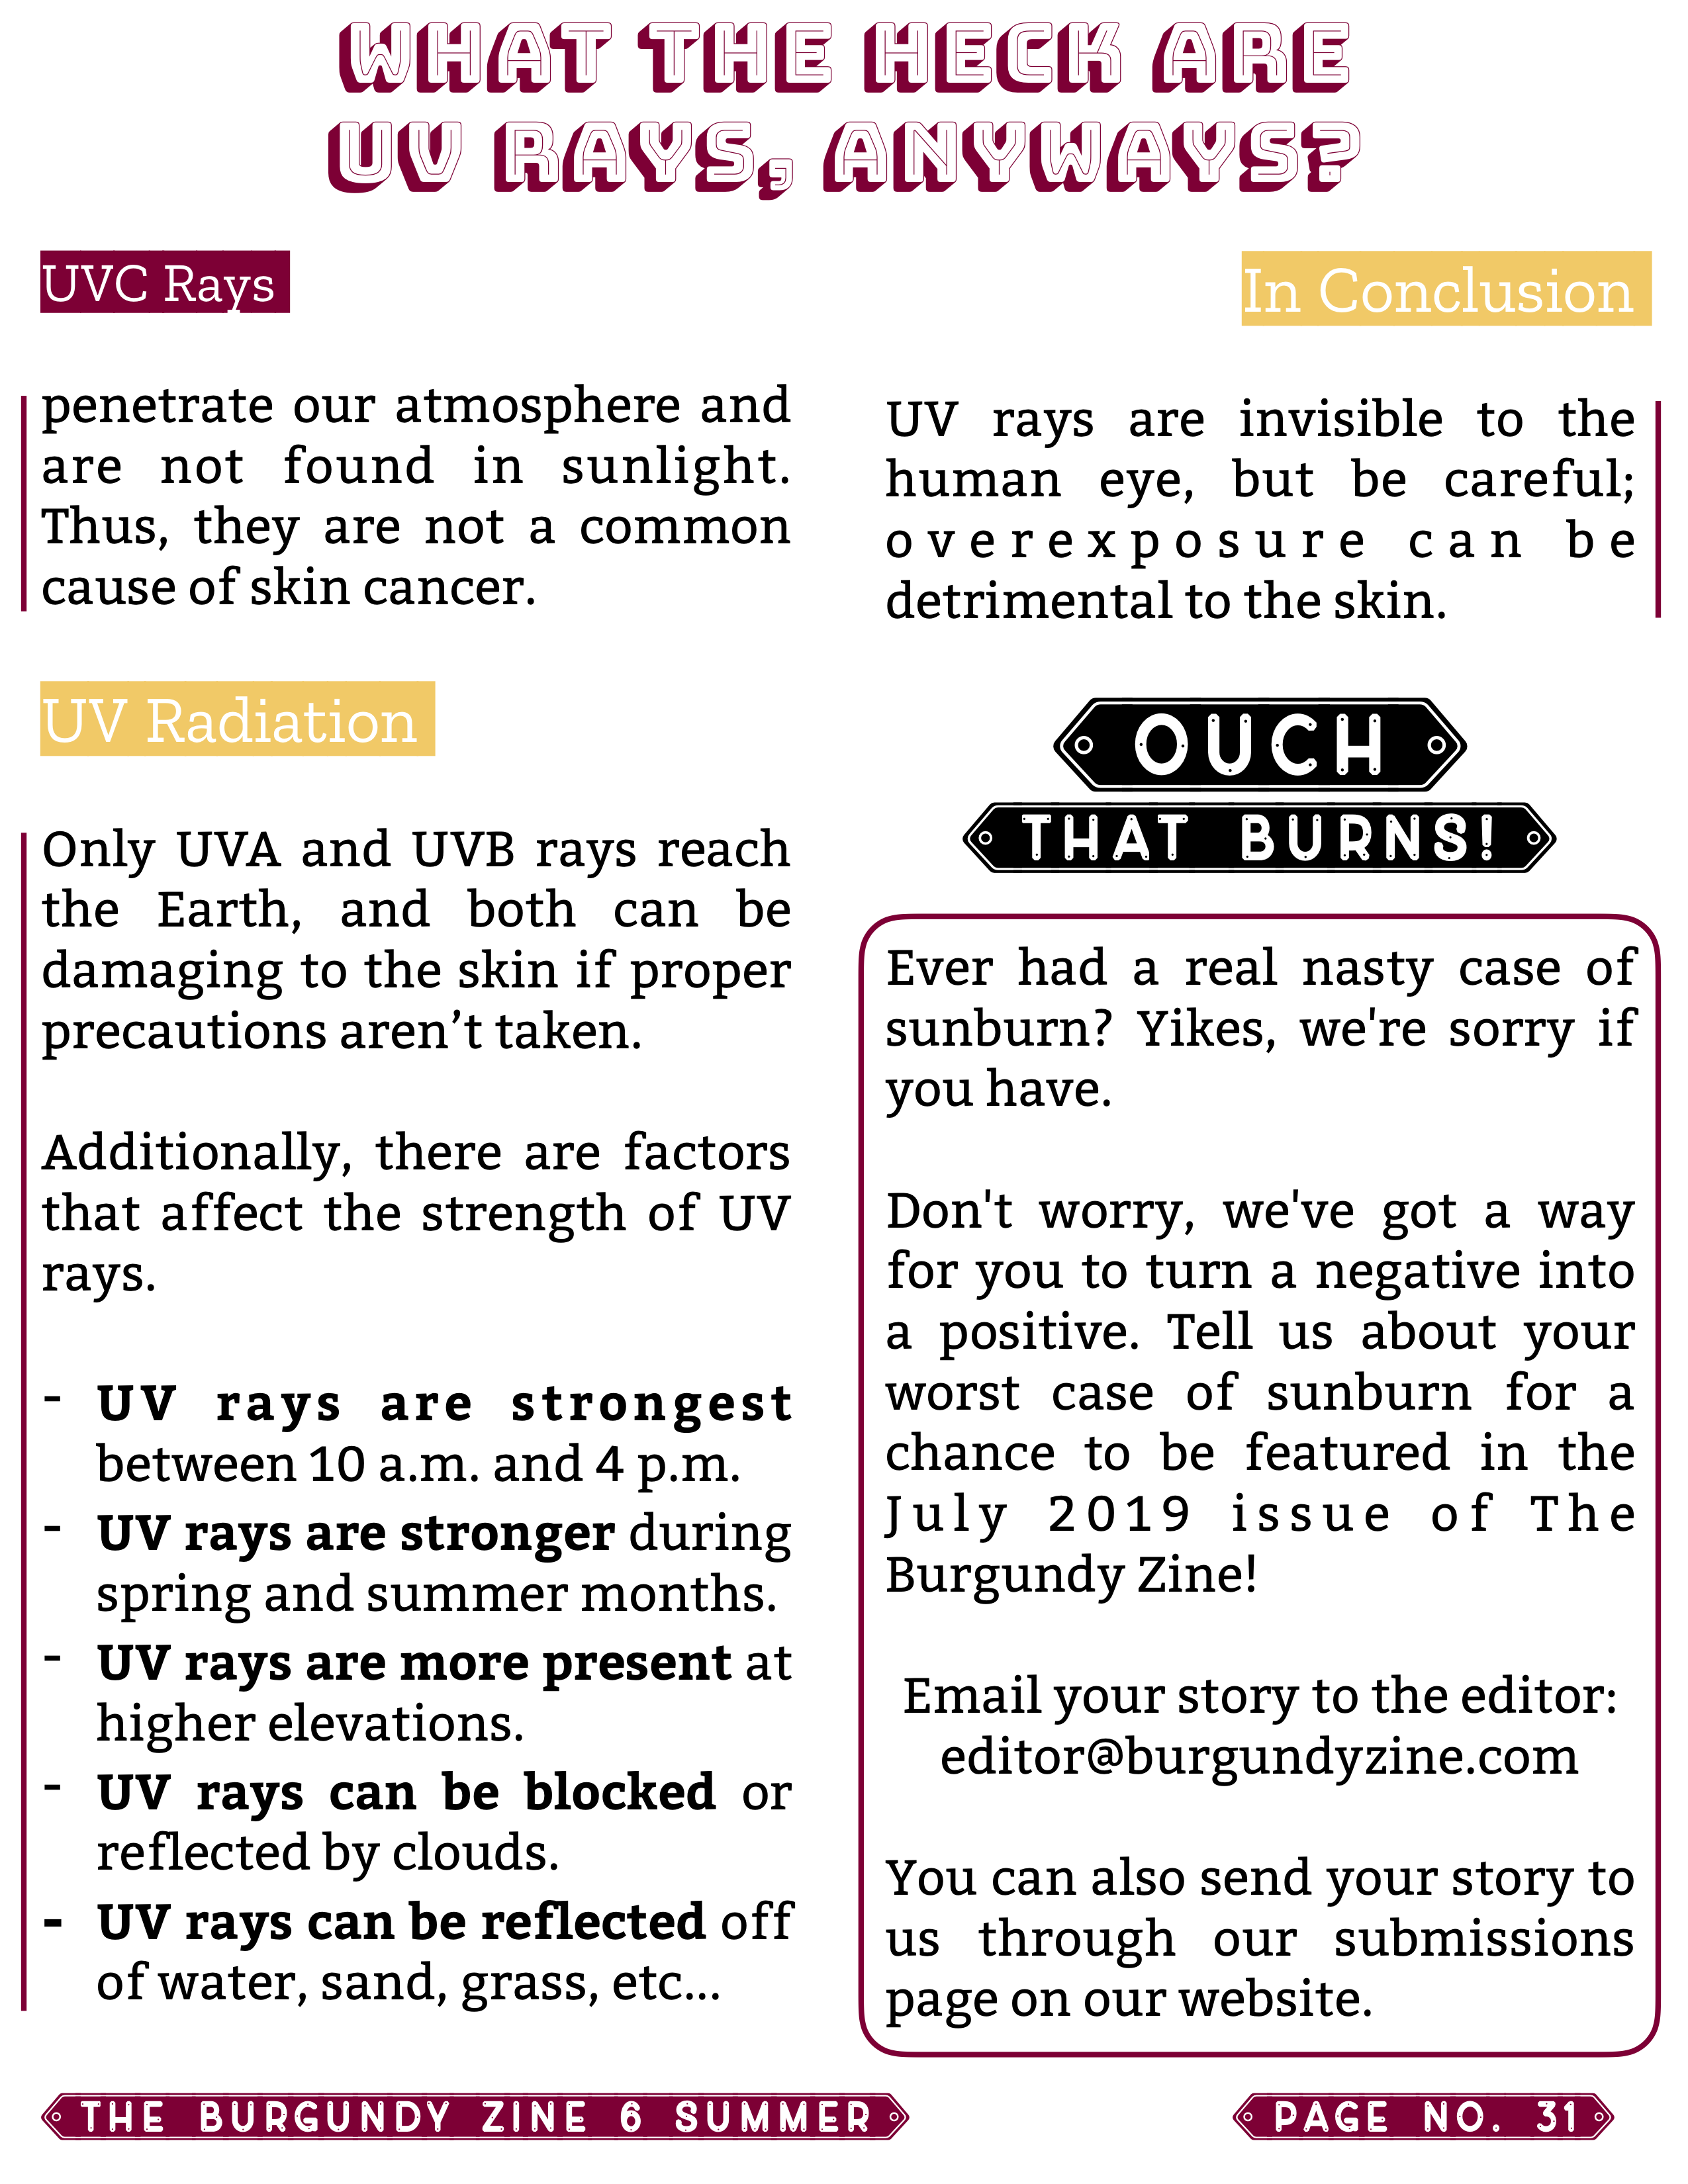 The Burgundy Zine #6: Summer Pg. 31